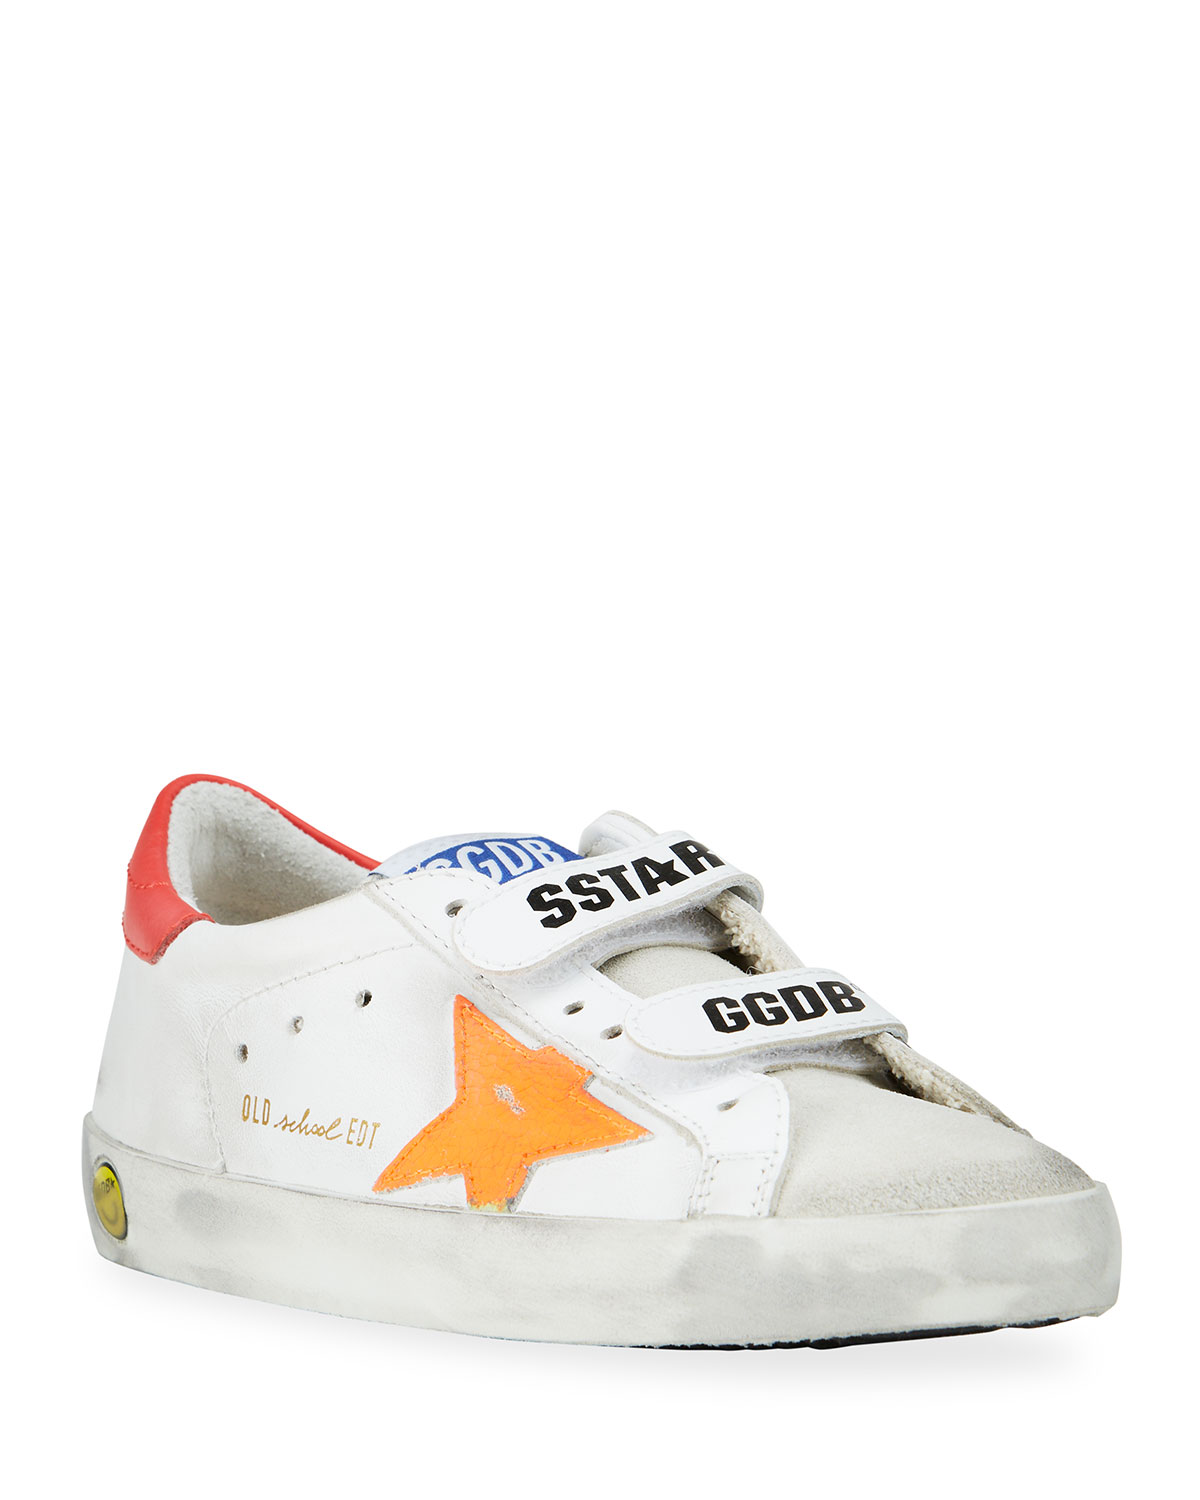 Golden Goose Leathers OLD SCHOOL LOGO DOUBLE GRIP-STRAP SNEAKERS, TODDLER/KIDS